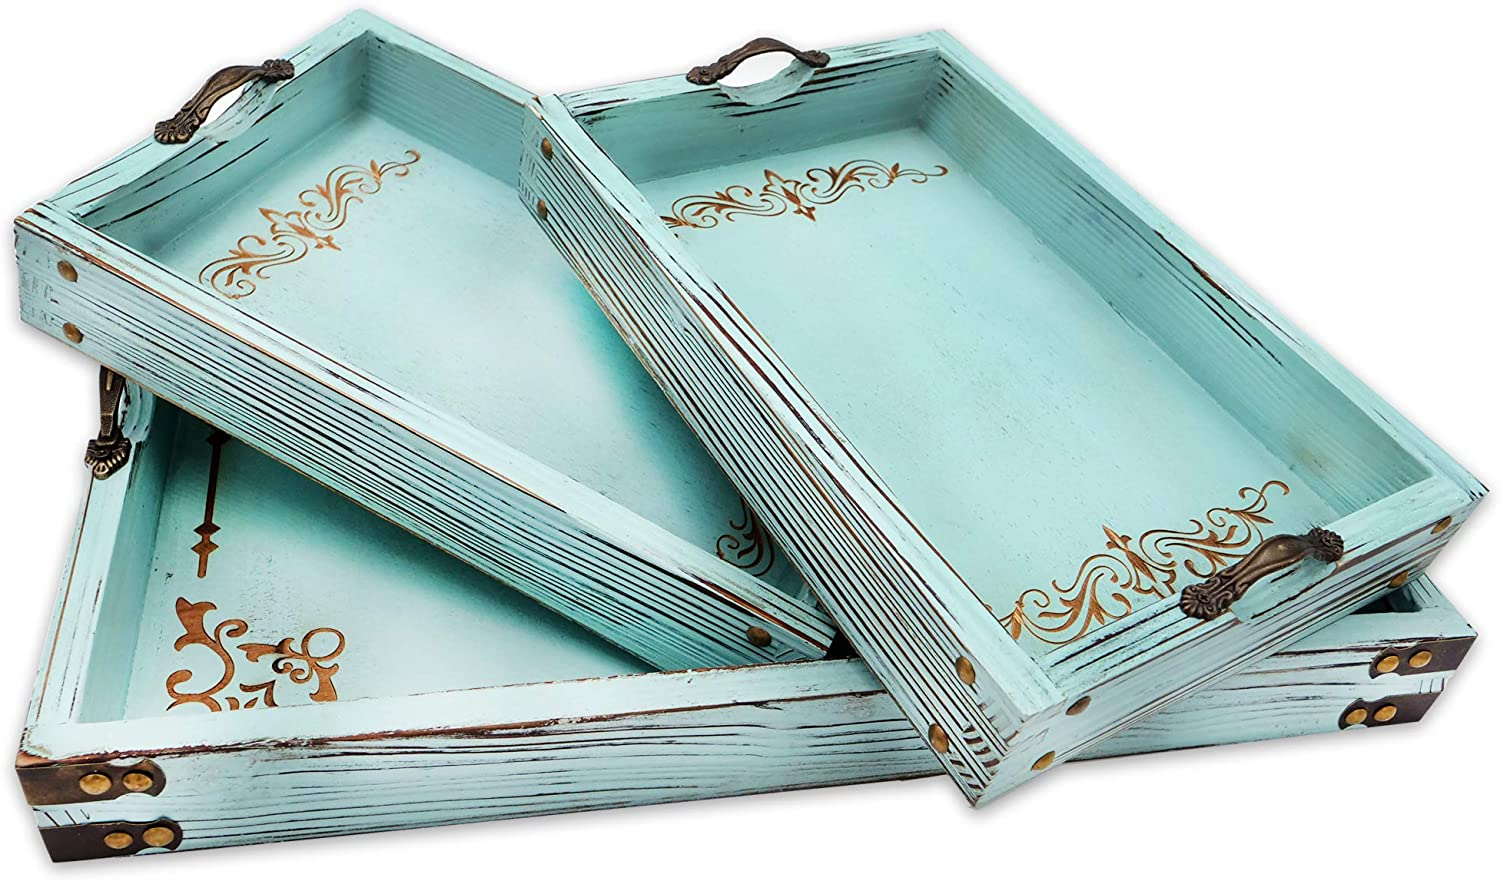 Modern 5th Vintage Aqua Blue Ottoman Wooden Serving Trays with Handles Set of 3 Decorative Tray, Coastal Decor, Pattern Designed